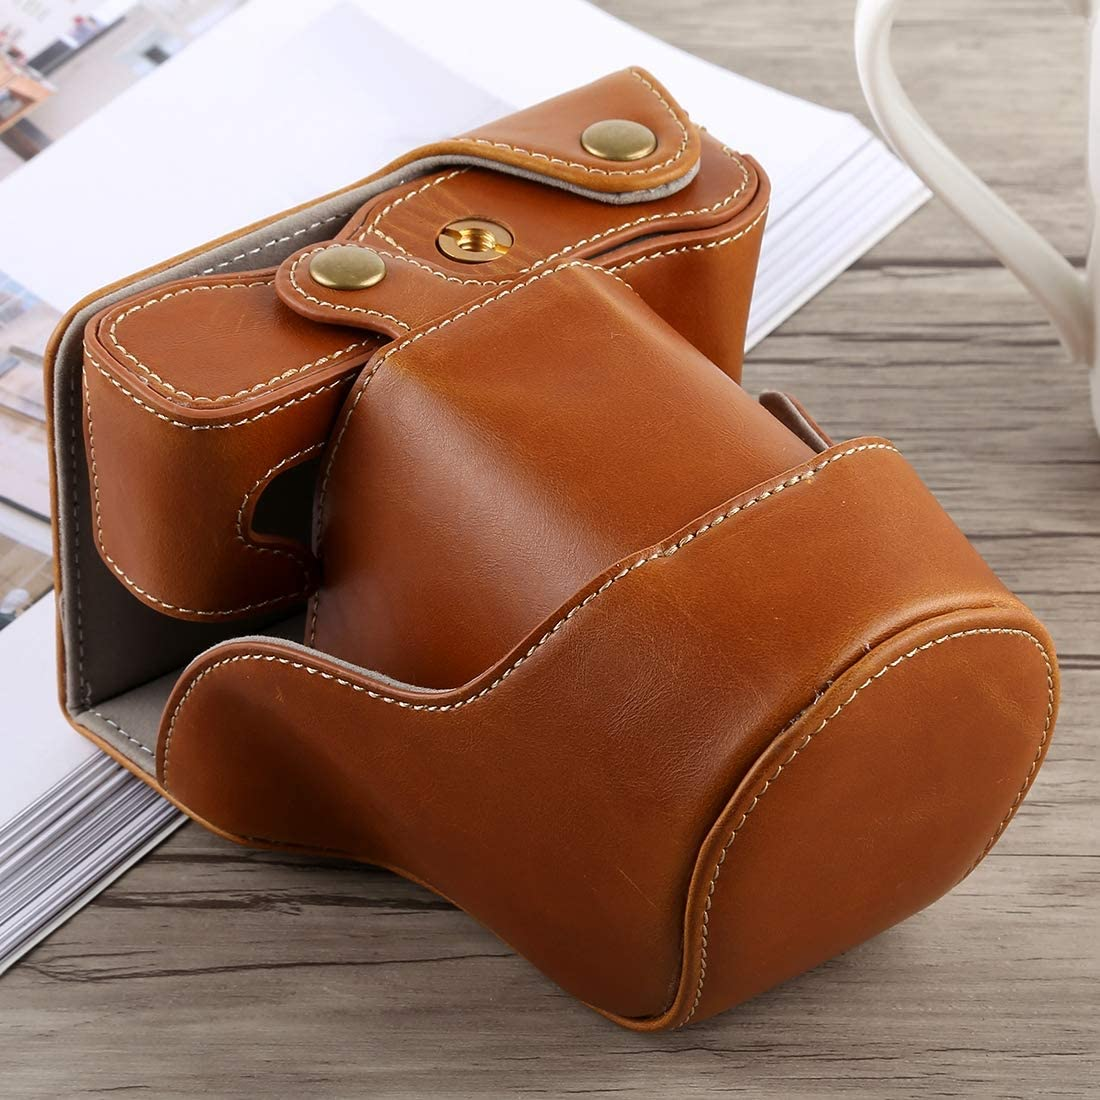 Color : Coffee Black CYcaibang Camera Bag Total Body Camera PU Leather Case Bag with Strap for Fujifilm X-A5